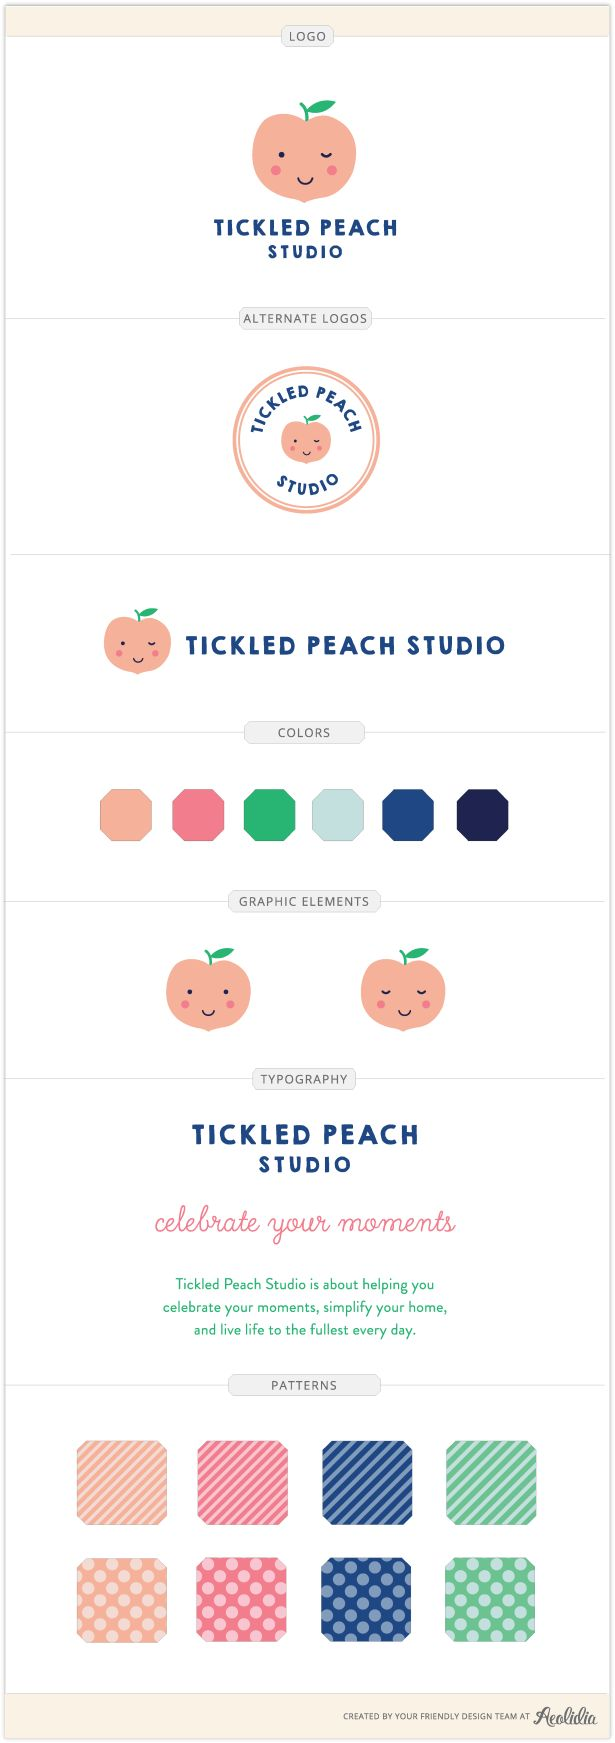 Tickled Peach Studio logo and brand identity by Aeolidia. A sweet, flirty peach becomes the mascot for Tickled Peach Studio. We created a playful and cheery brand with bright graphics and friendly typography to welcome the kids—and kids at heart—who shop Tickled Peach Studio's stationery and products.